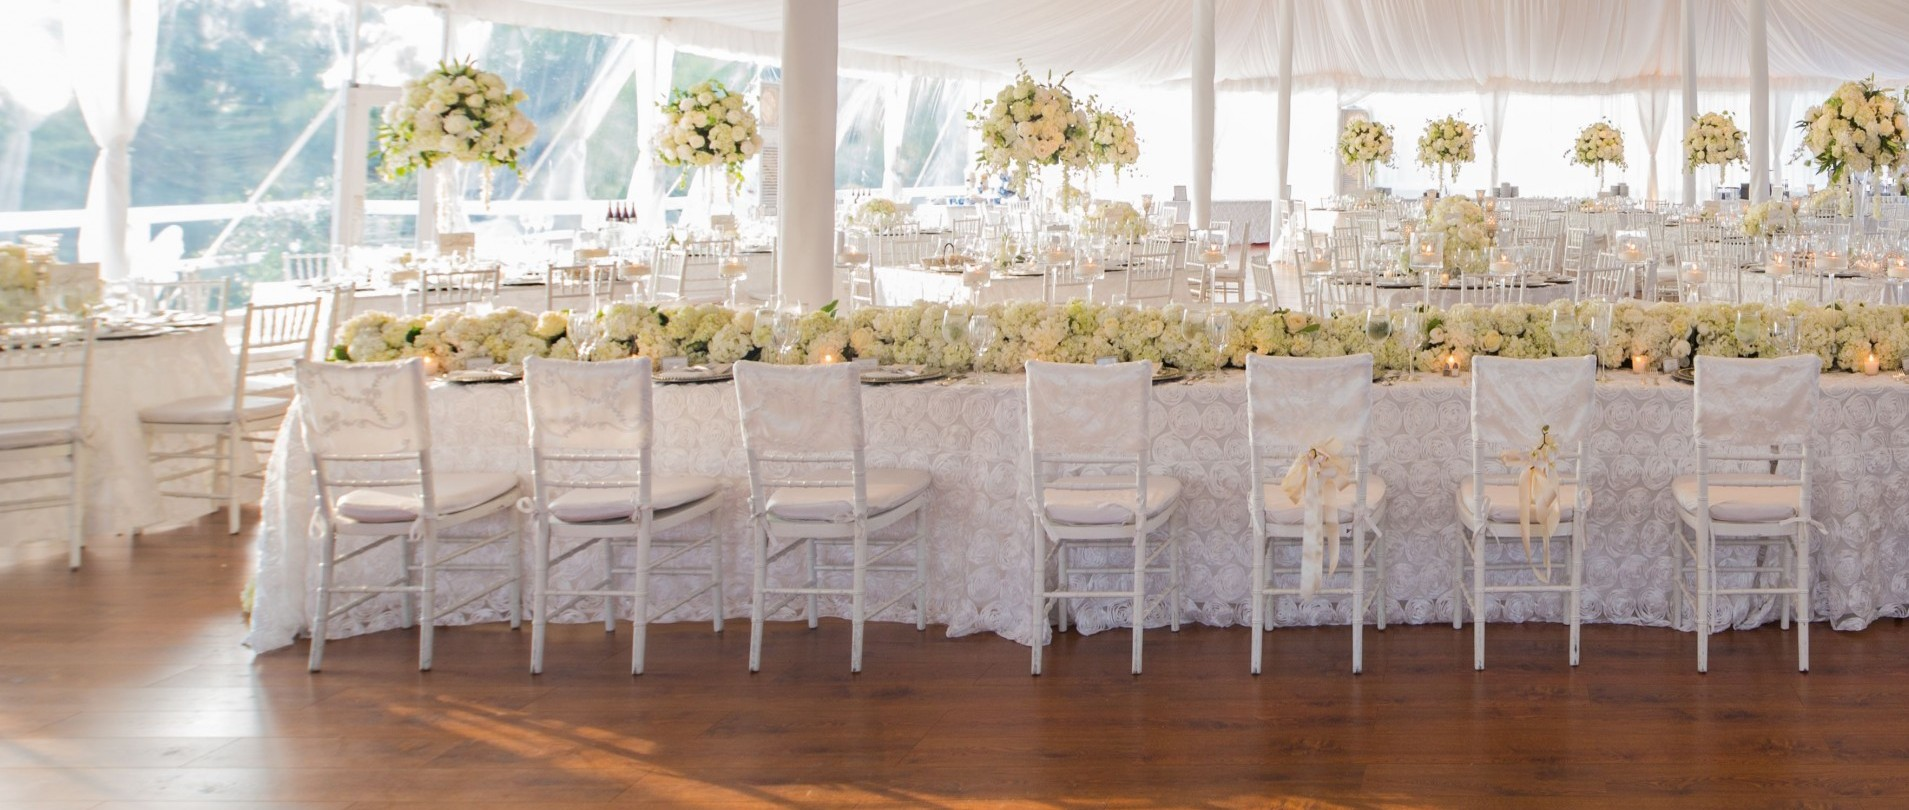 chair cover rentals baltimore md bariatric recliner wedding venues and vendors partyspace